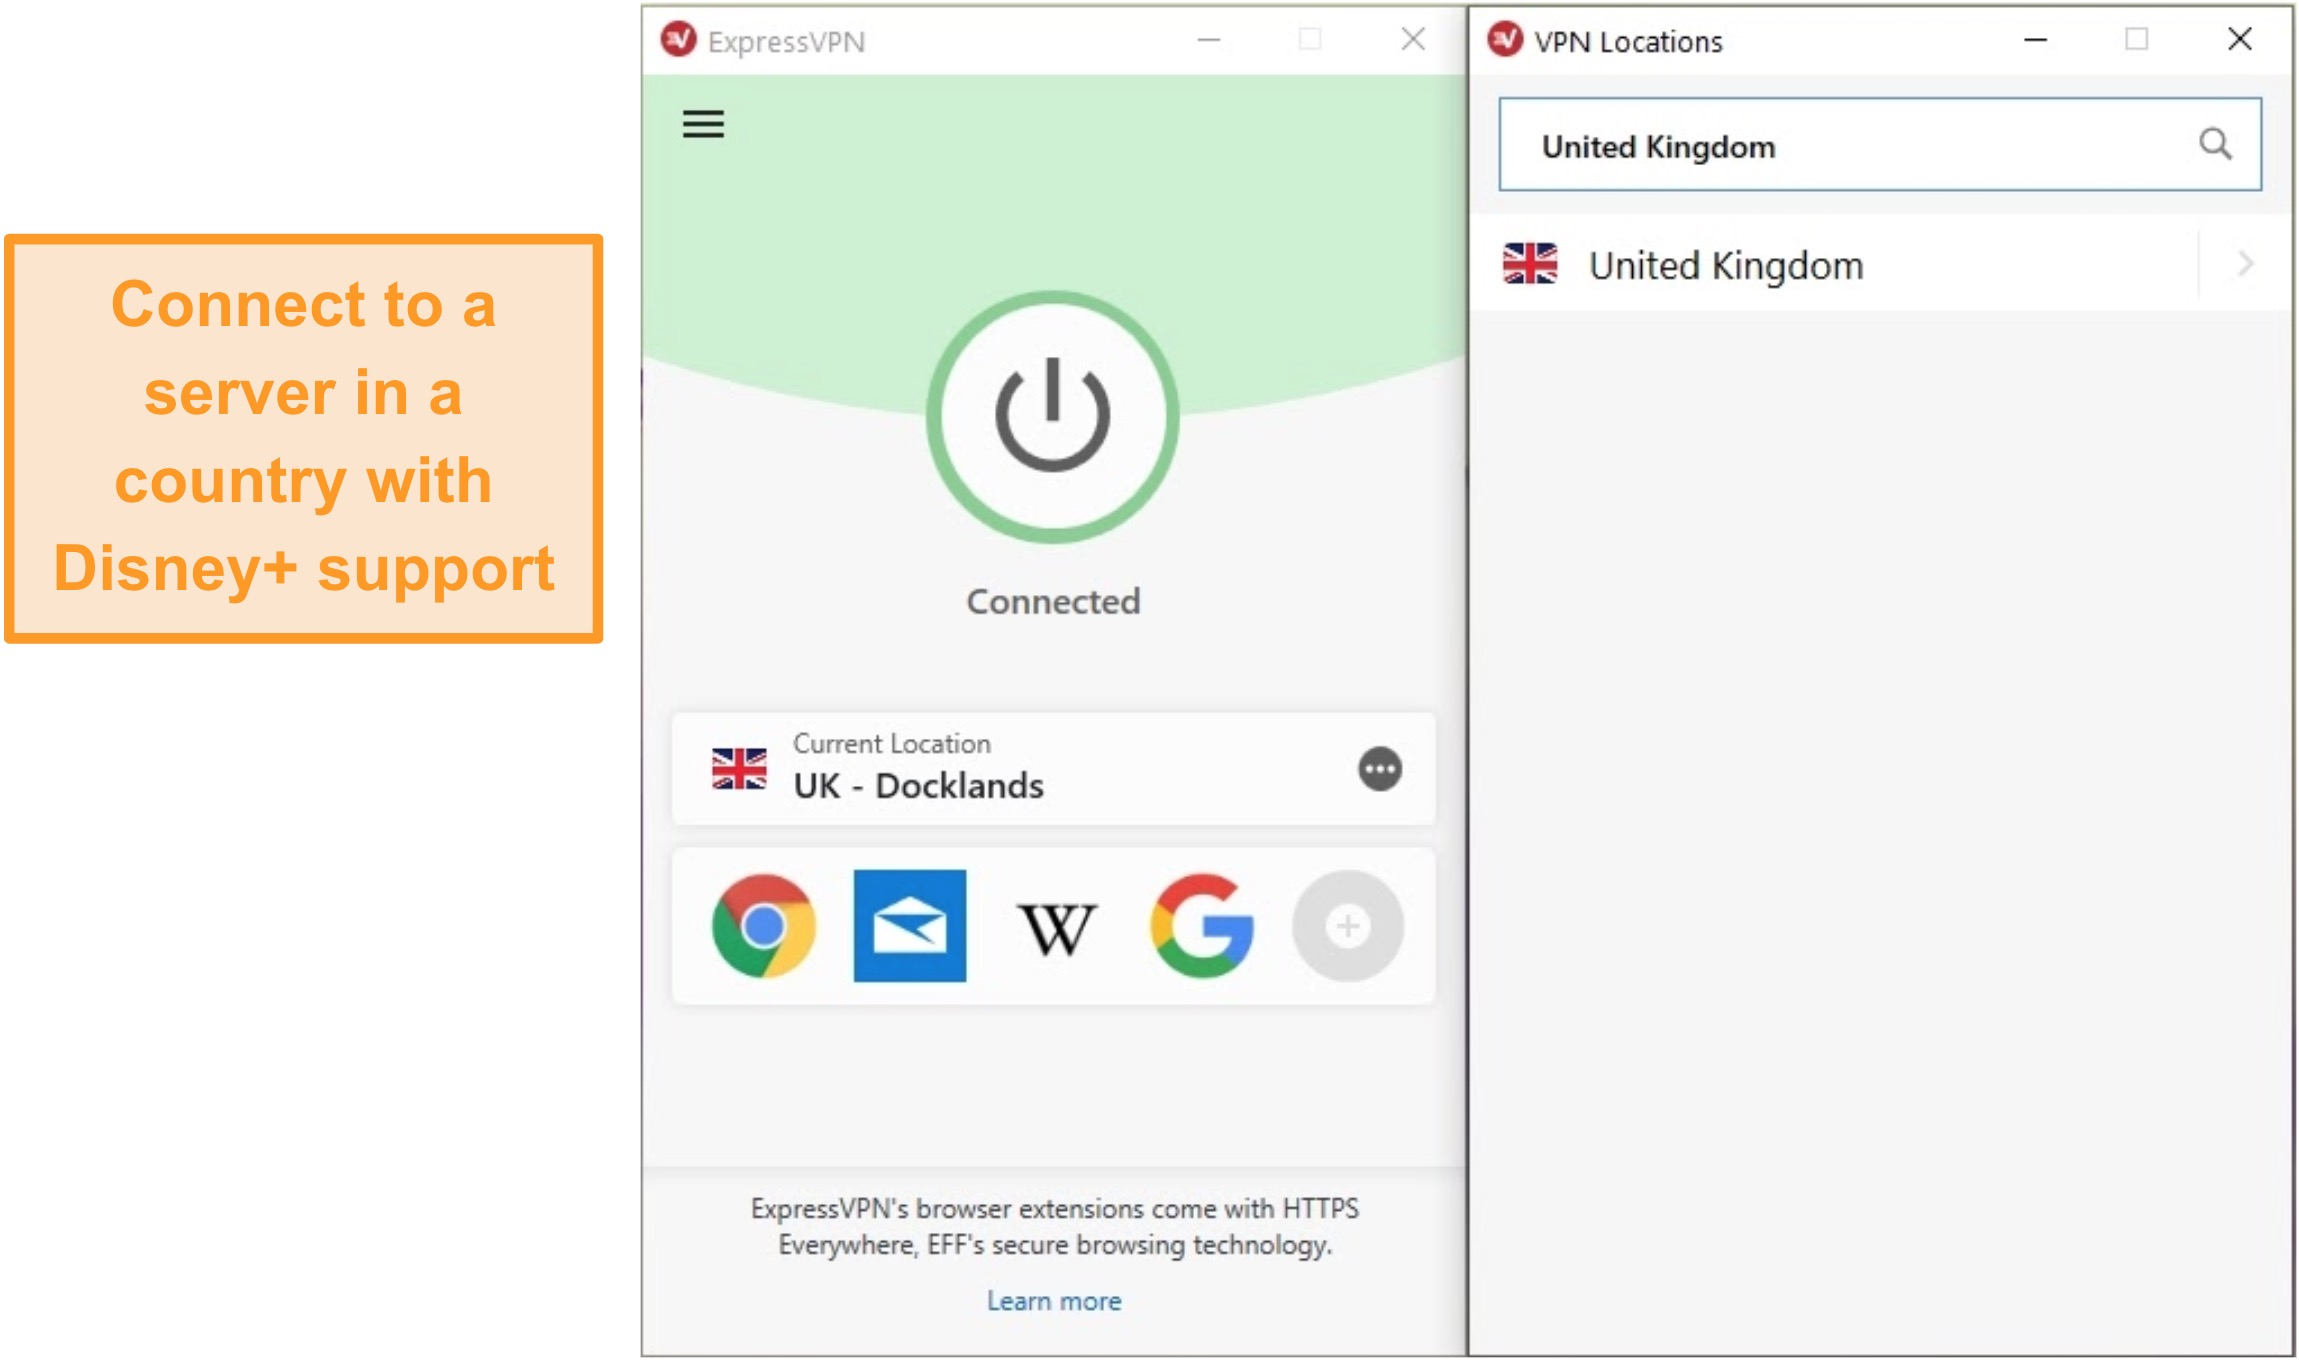 Screenshot of ExpressVPN connected to a UK Docklands server.